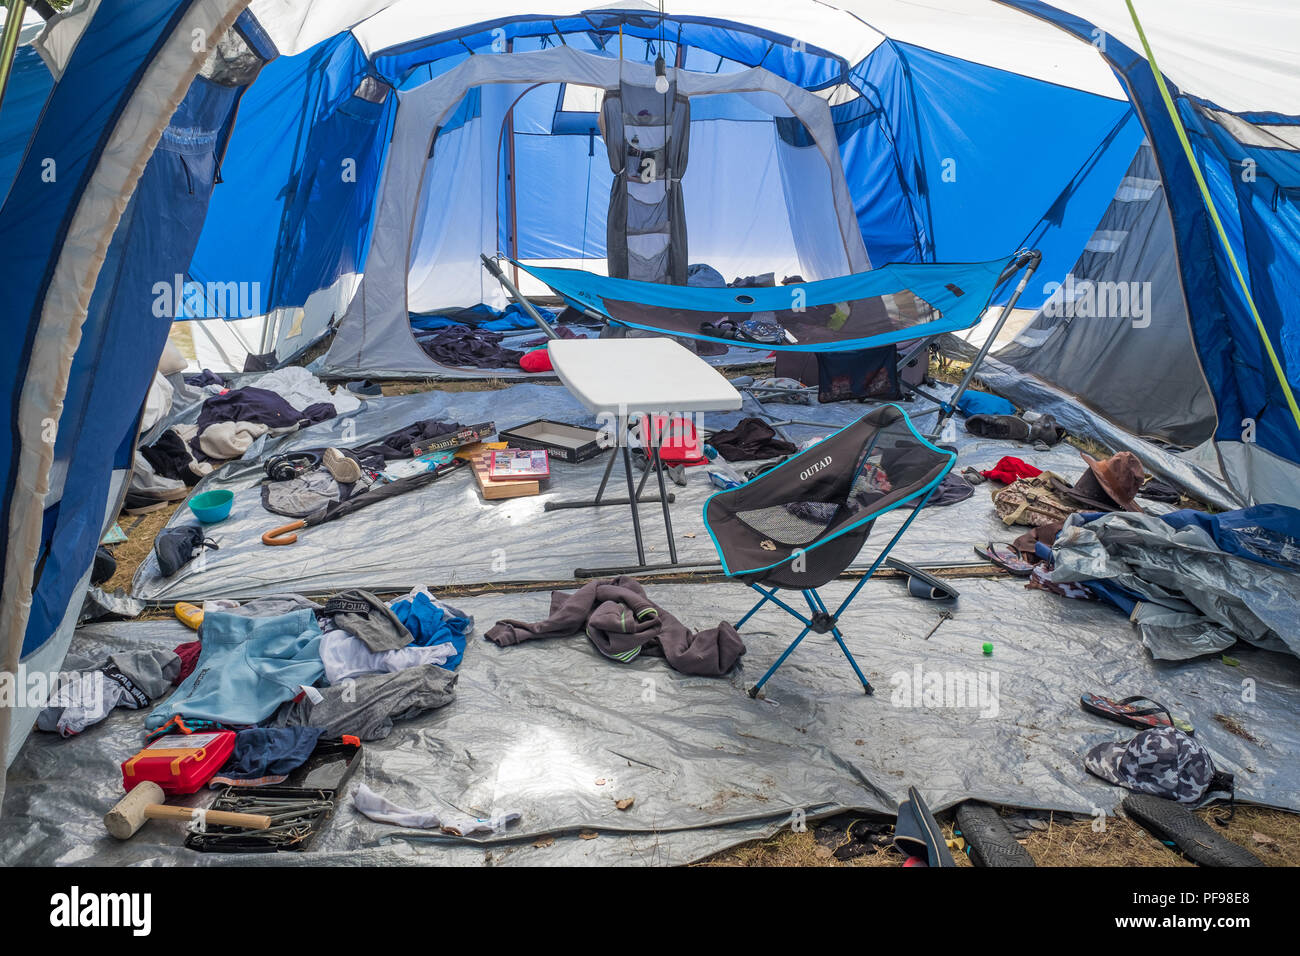 Untidy interior of a large tent, with clothes, chairs, and equipment strewn all over the place. - Stock Image